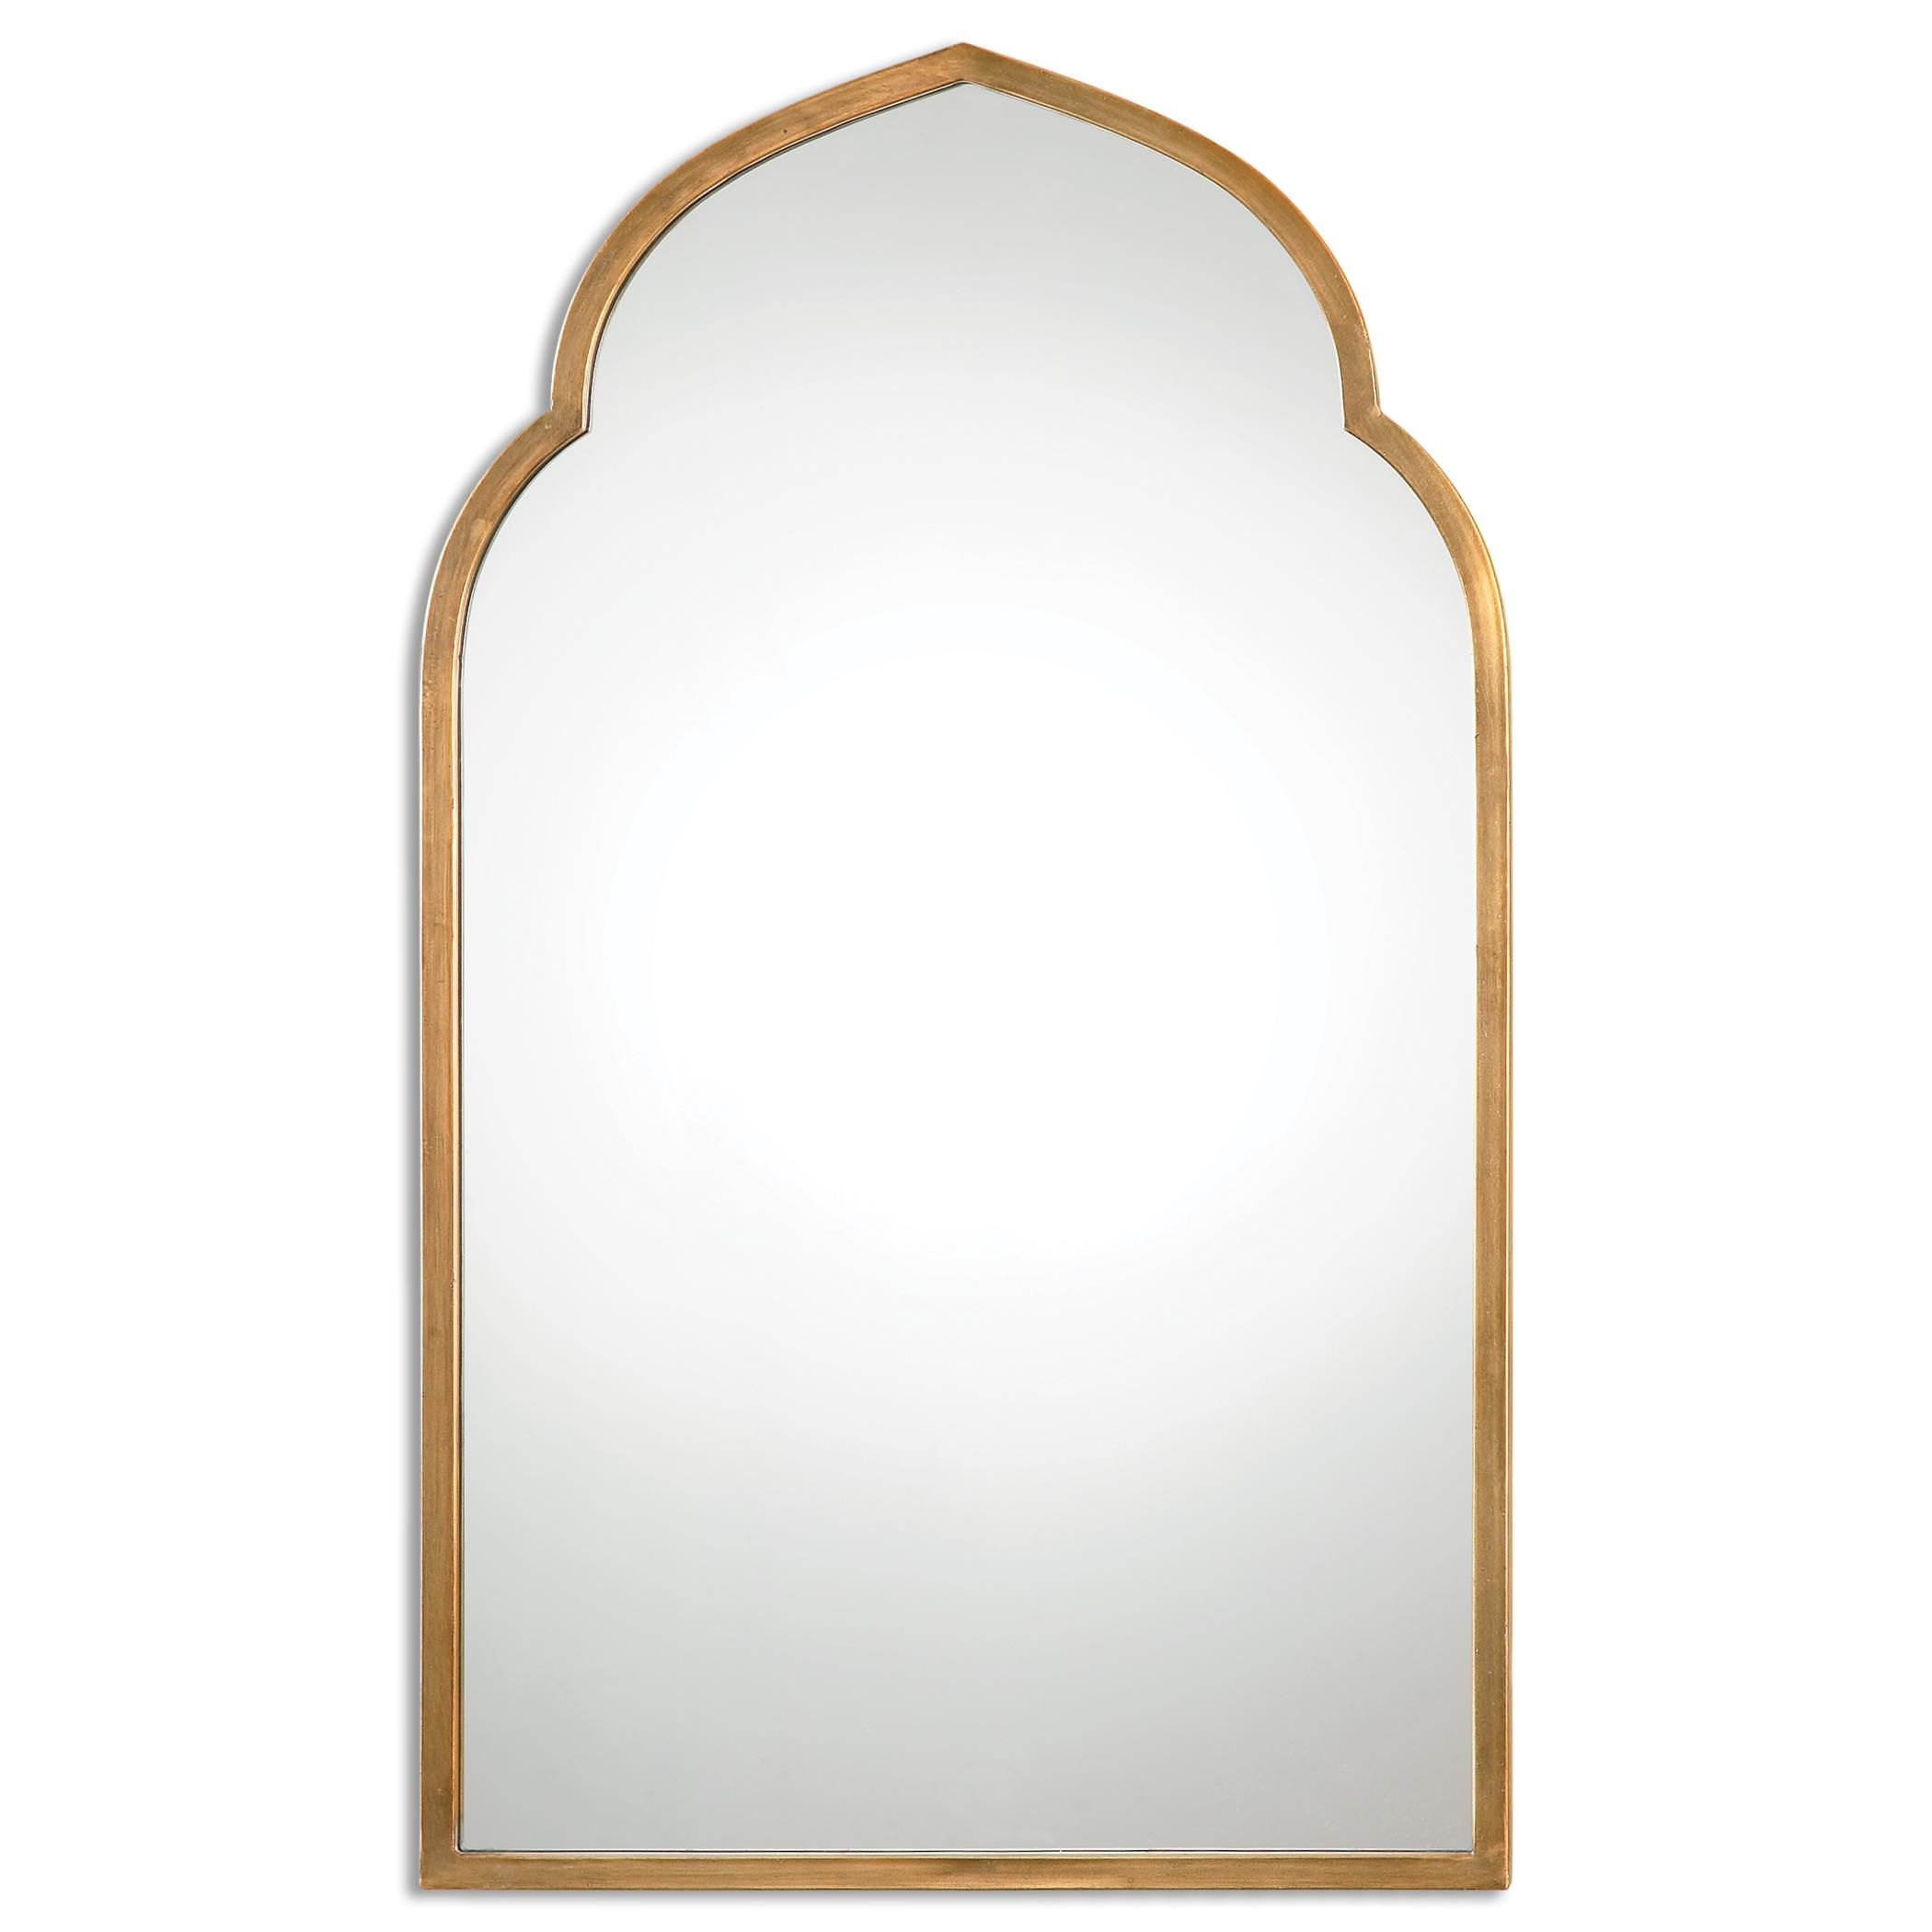 Uttermost Mirrors Kenitra Gold Arch Mirror - Item Number: 12907